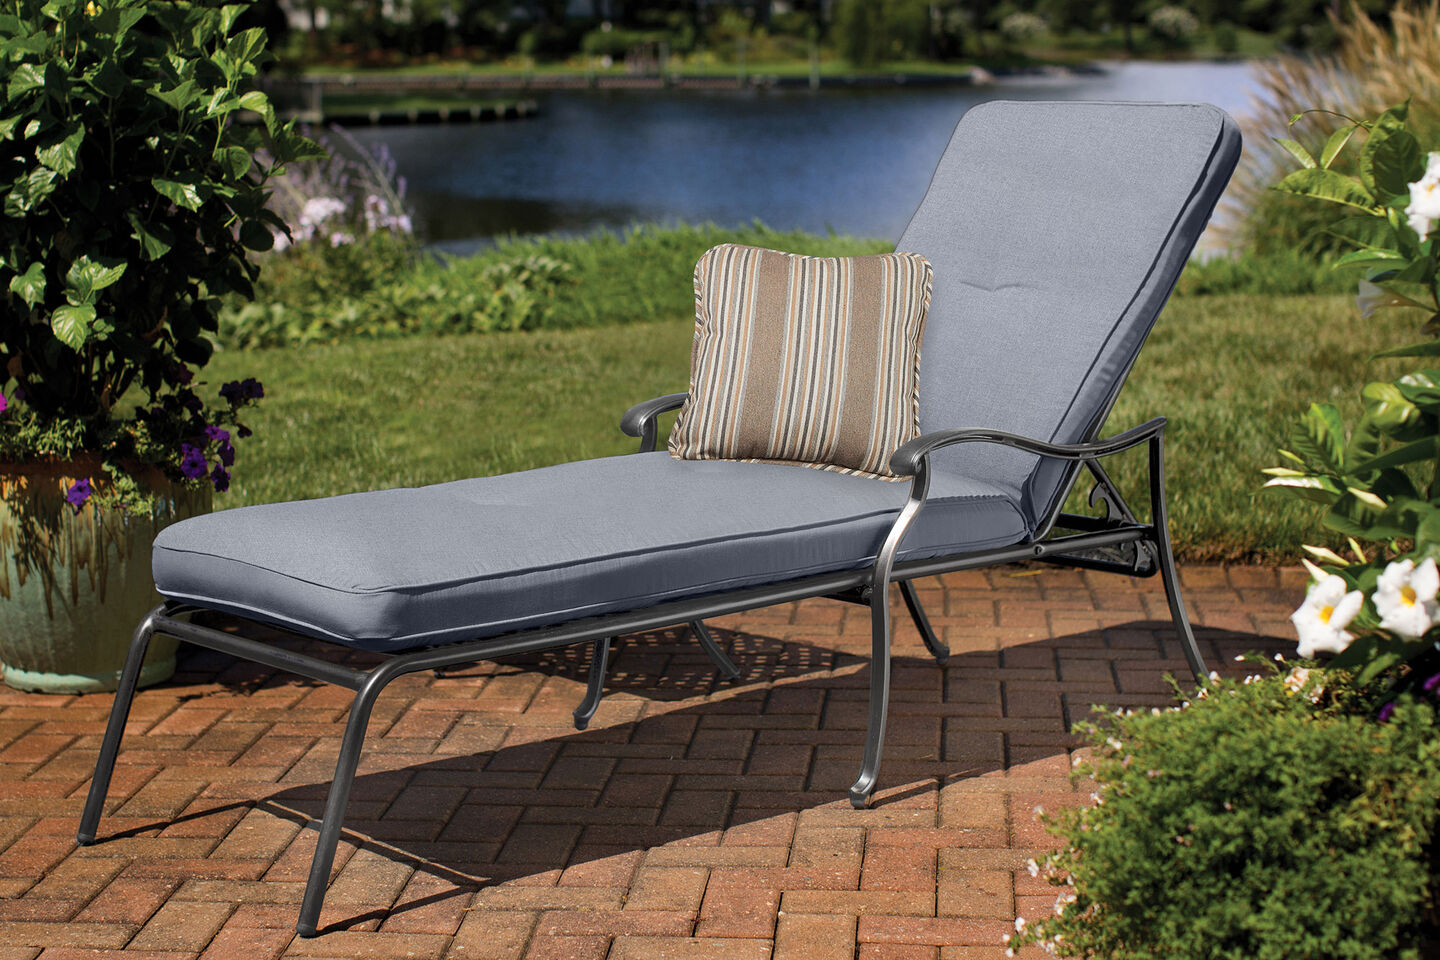 Madison by Aty chaise lounge with blue cuspricihion and striped accent pillow on brick patio